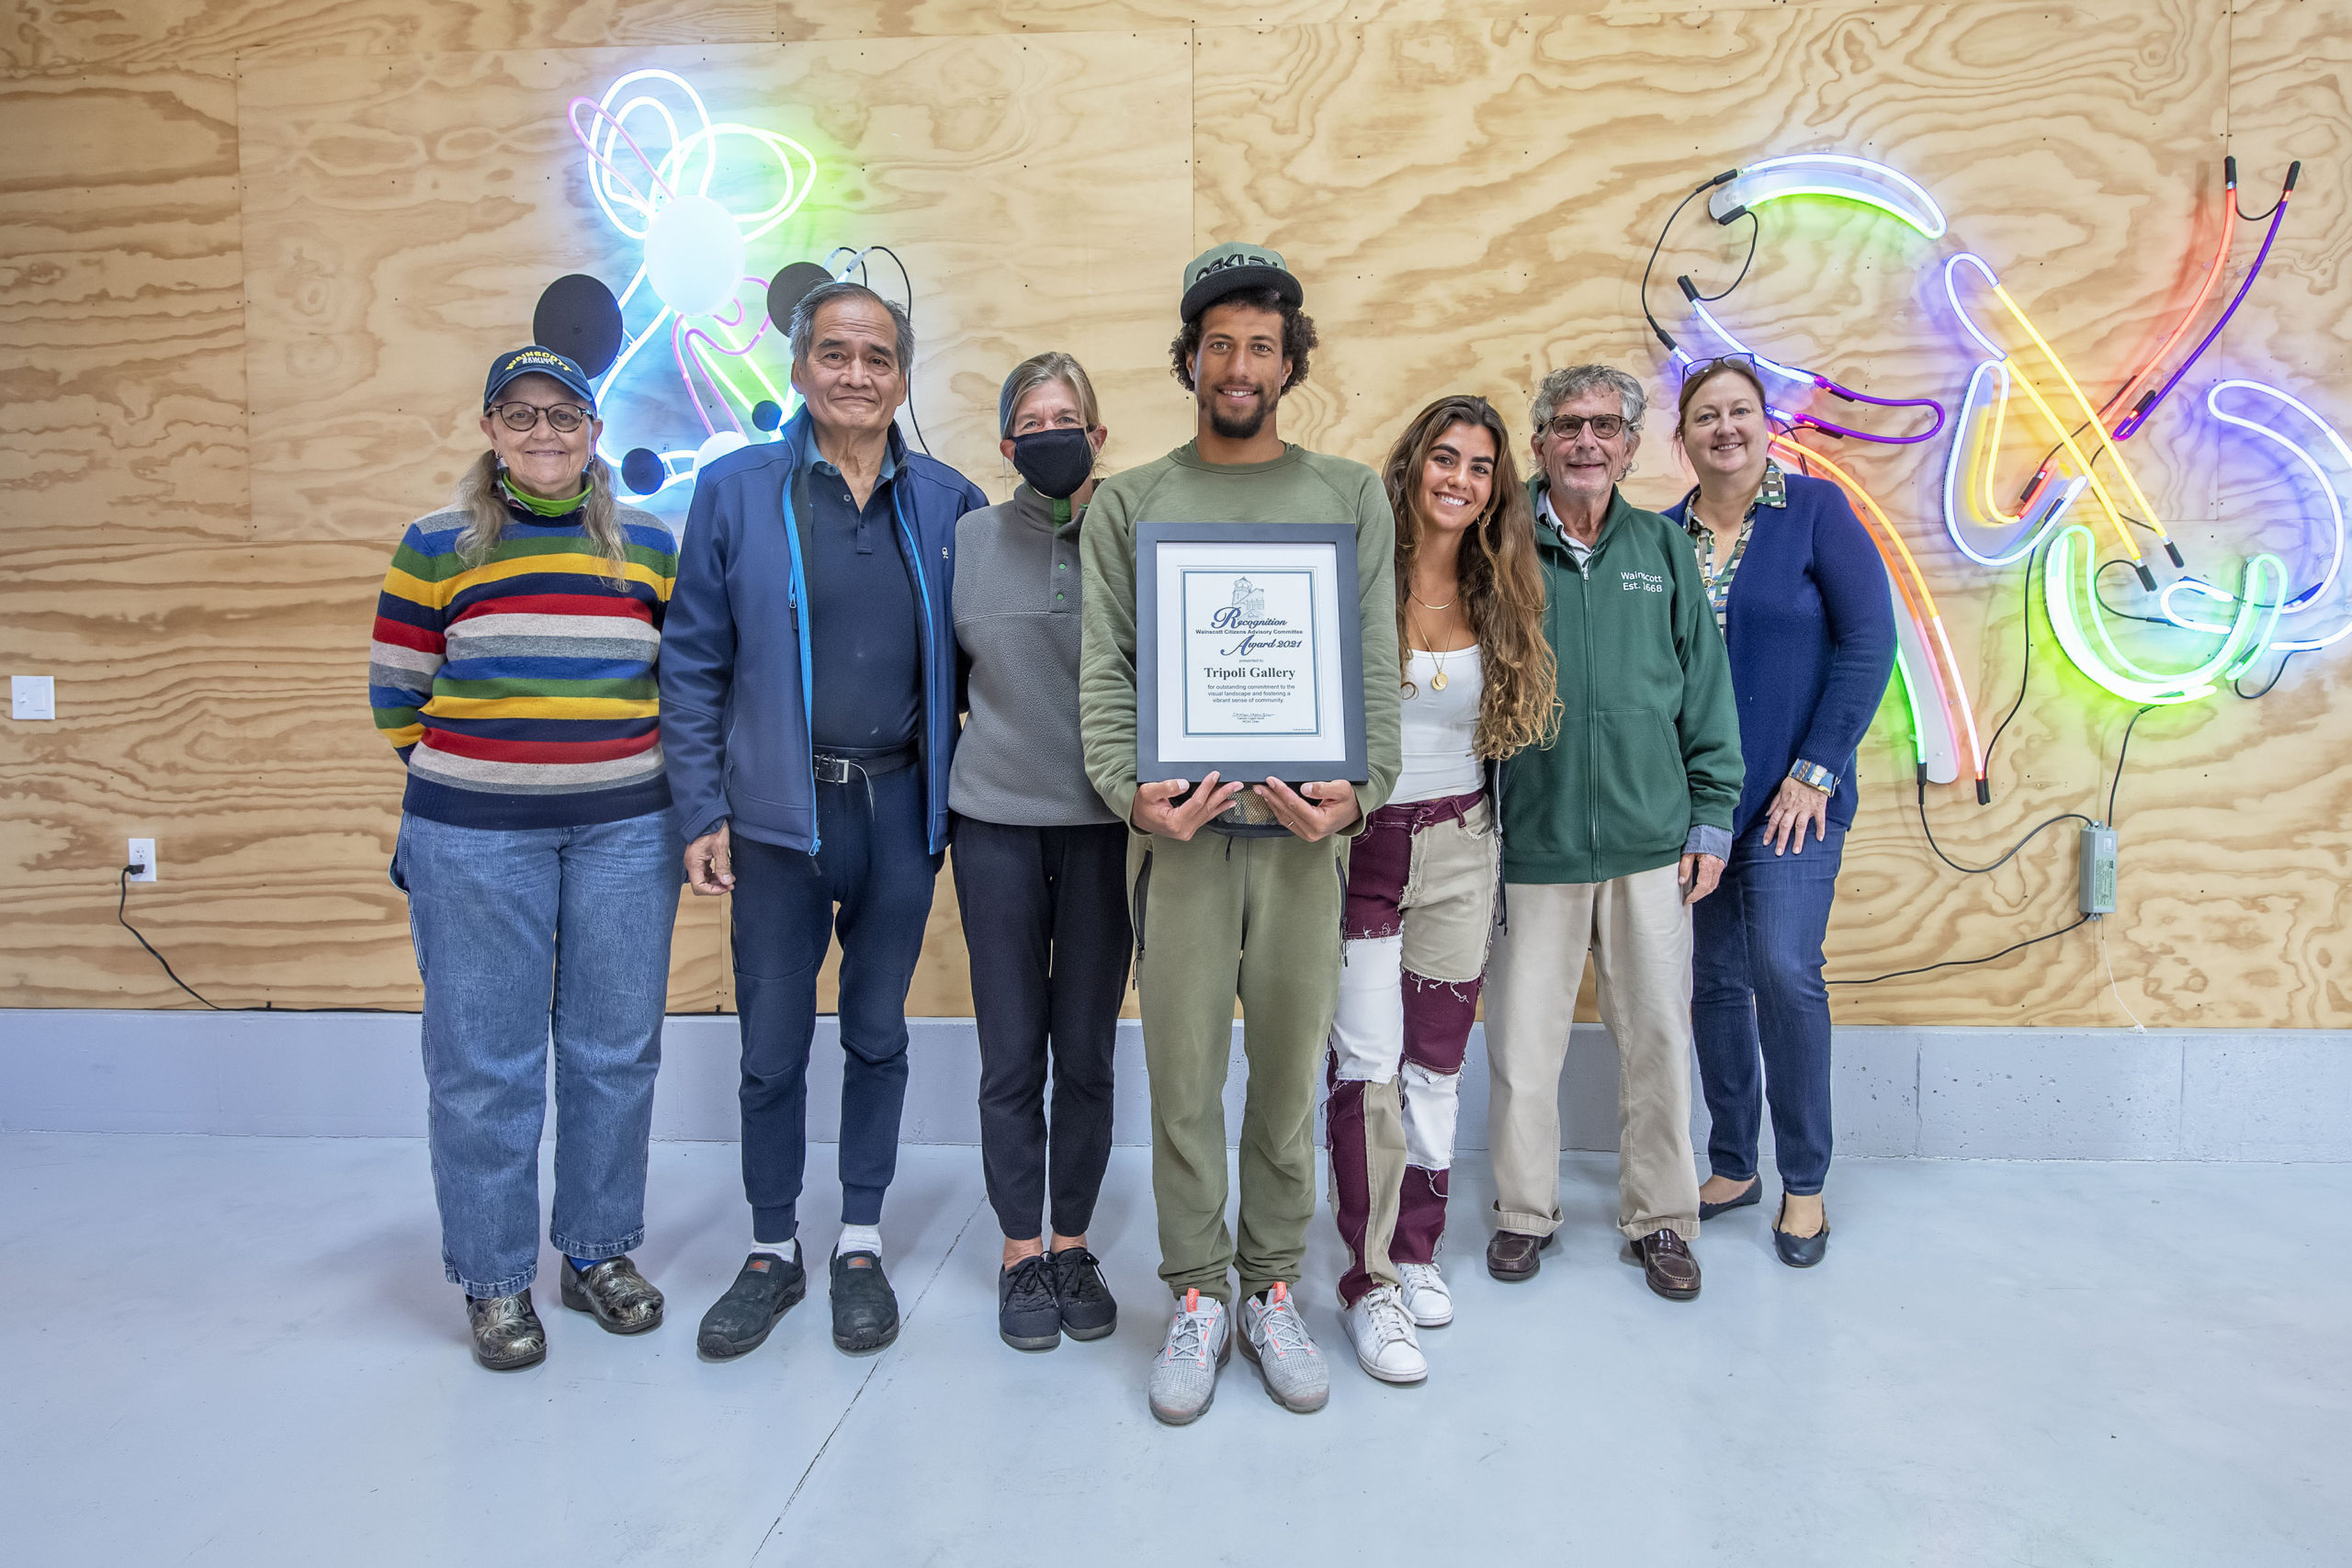 , Tripoli Patterson of the Tripoli Gallery was presented with the 2021 annual Business Community Award from the Wainscott CAC on Saturday. Left to right, Barbara D'Andrea, Philip Young, Carolyn Logan-Gluck, Tripoli Patterson, Olivia La Manna, Dennis D'Andrea and Lori Ann Czepiel.       MICHAEL HELLER